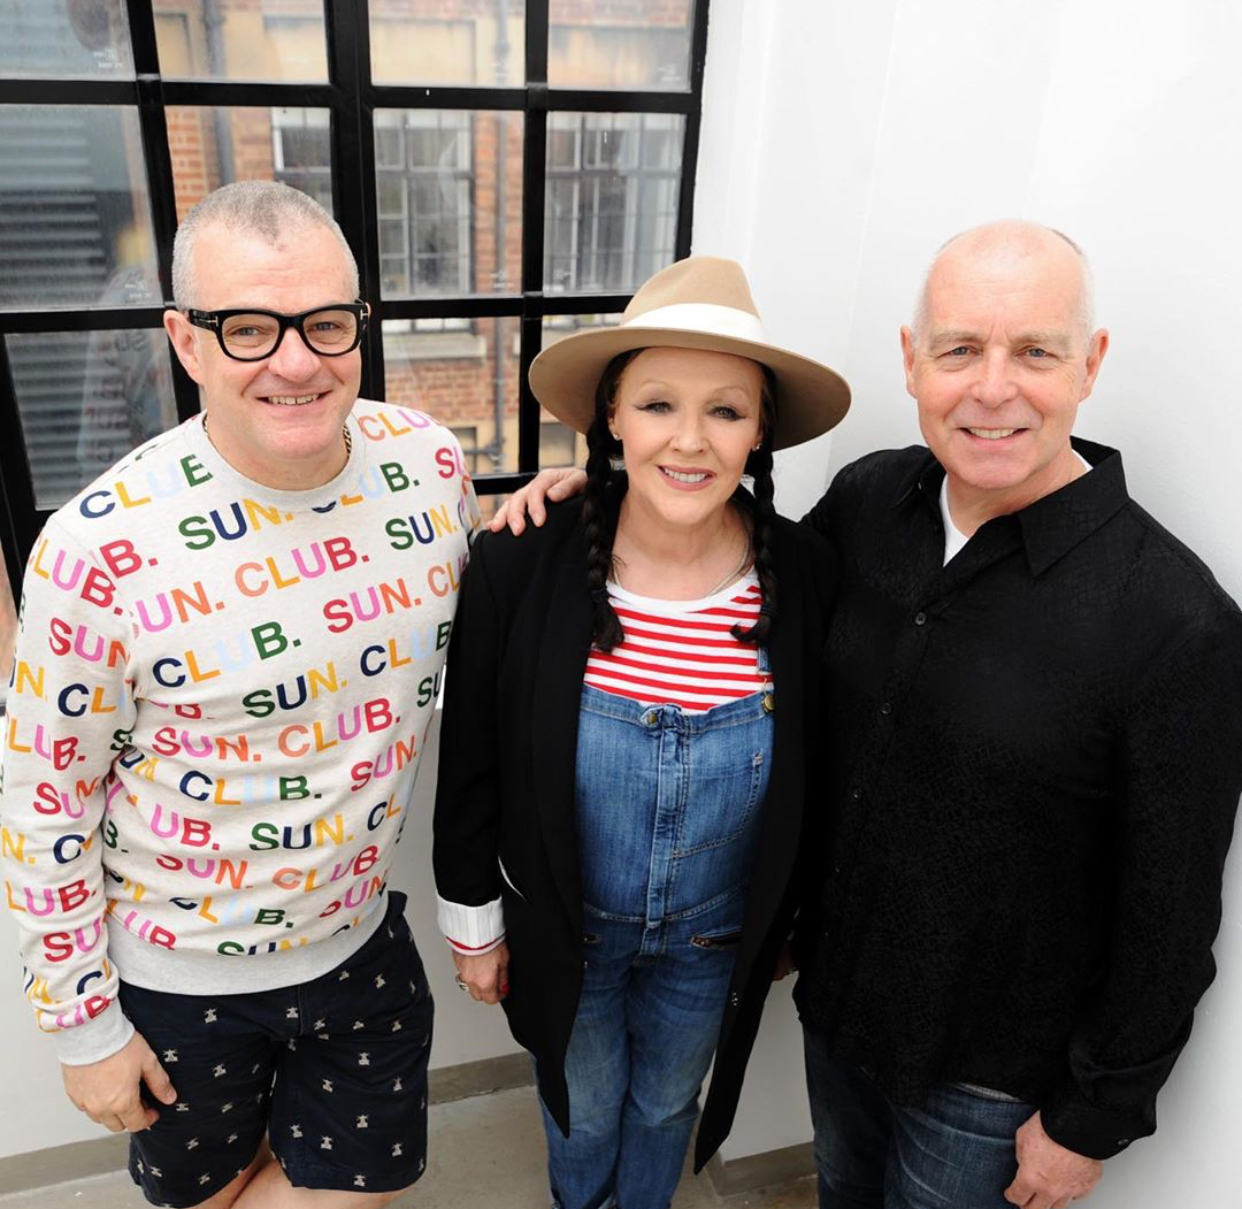 Jonathan Harvey, Frances Barber and Neil Tennant at BBC Radio 2 to talk about